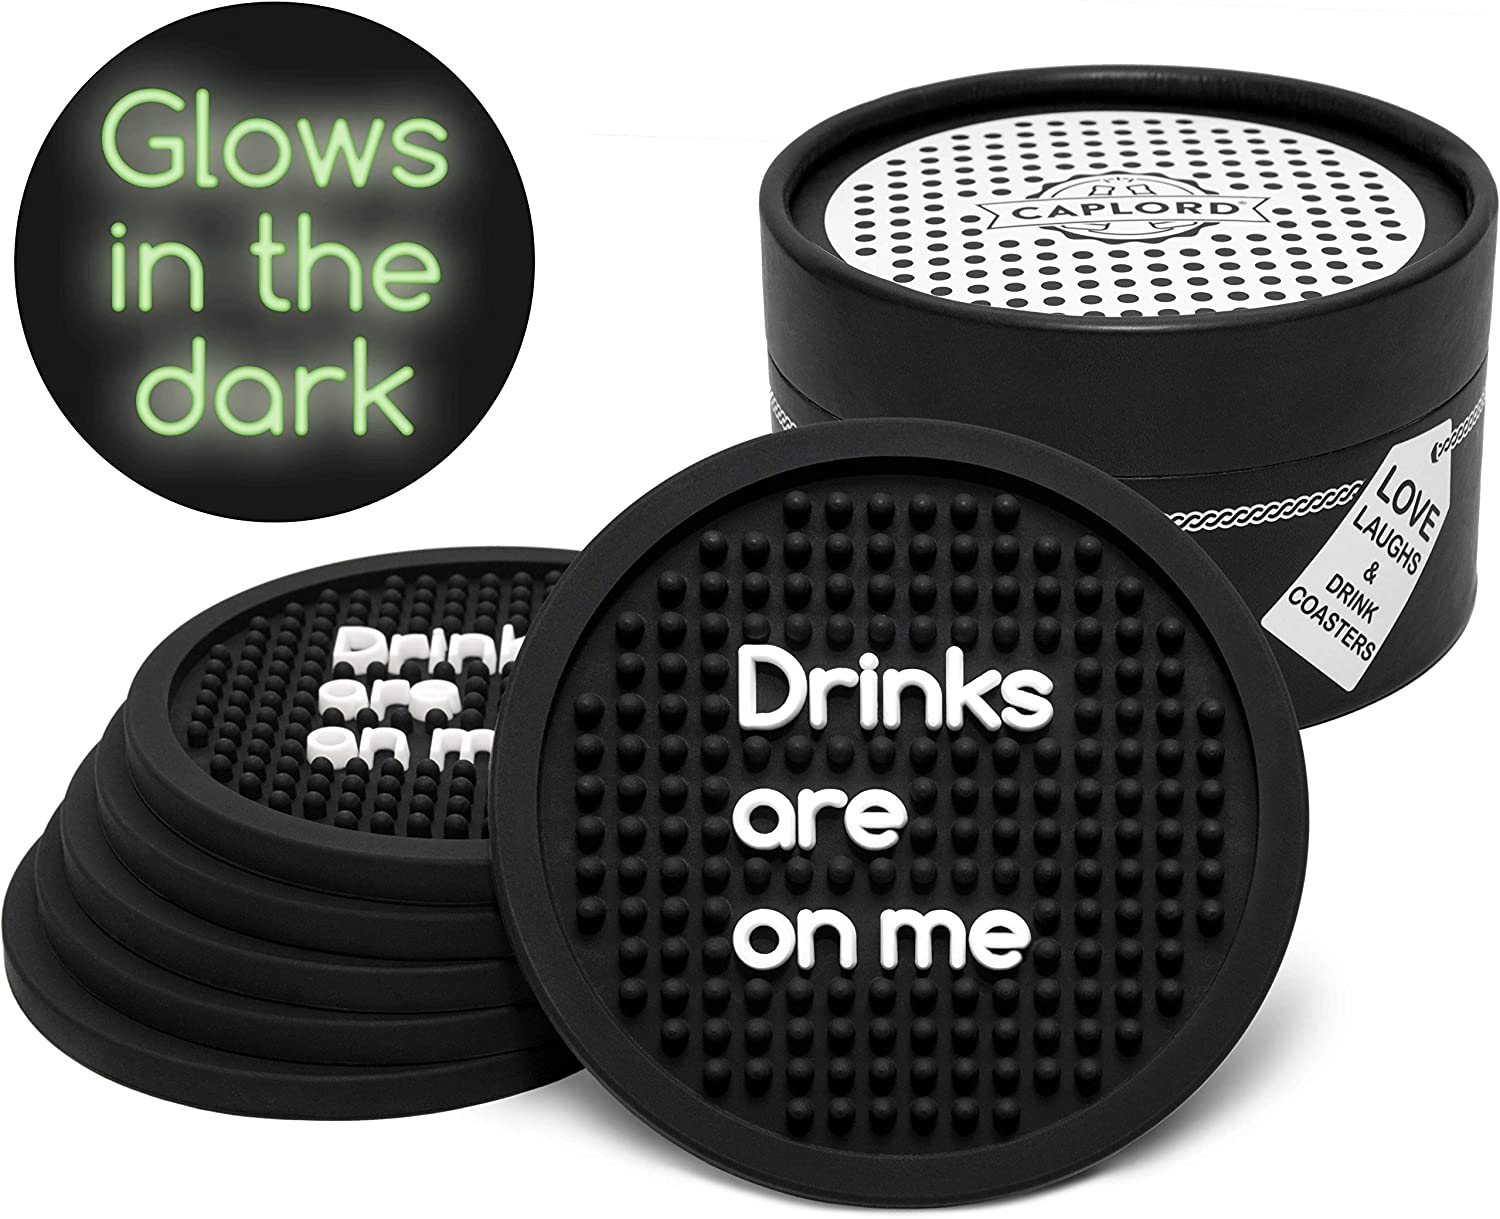 Coasters for Drinks, Dishwasher Safe, Patio Outdoor Silicone Absorbent Black Drink Coaster |Set of 6| Nonstick Neutral Absorbing, Funny Quotes Unique Hostess Gifts for Women Kitchen (Drinks are on me)